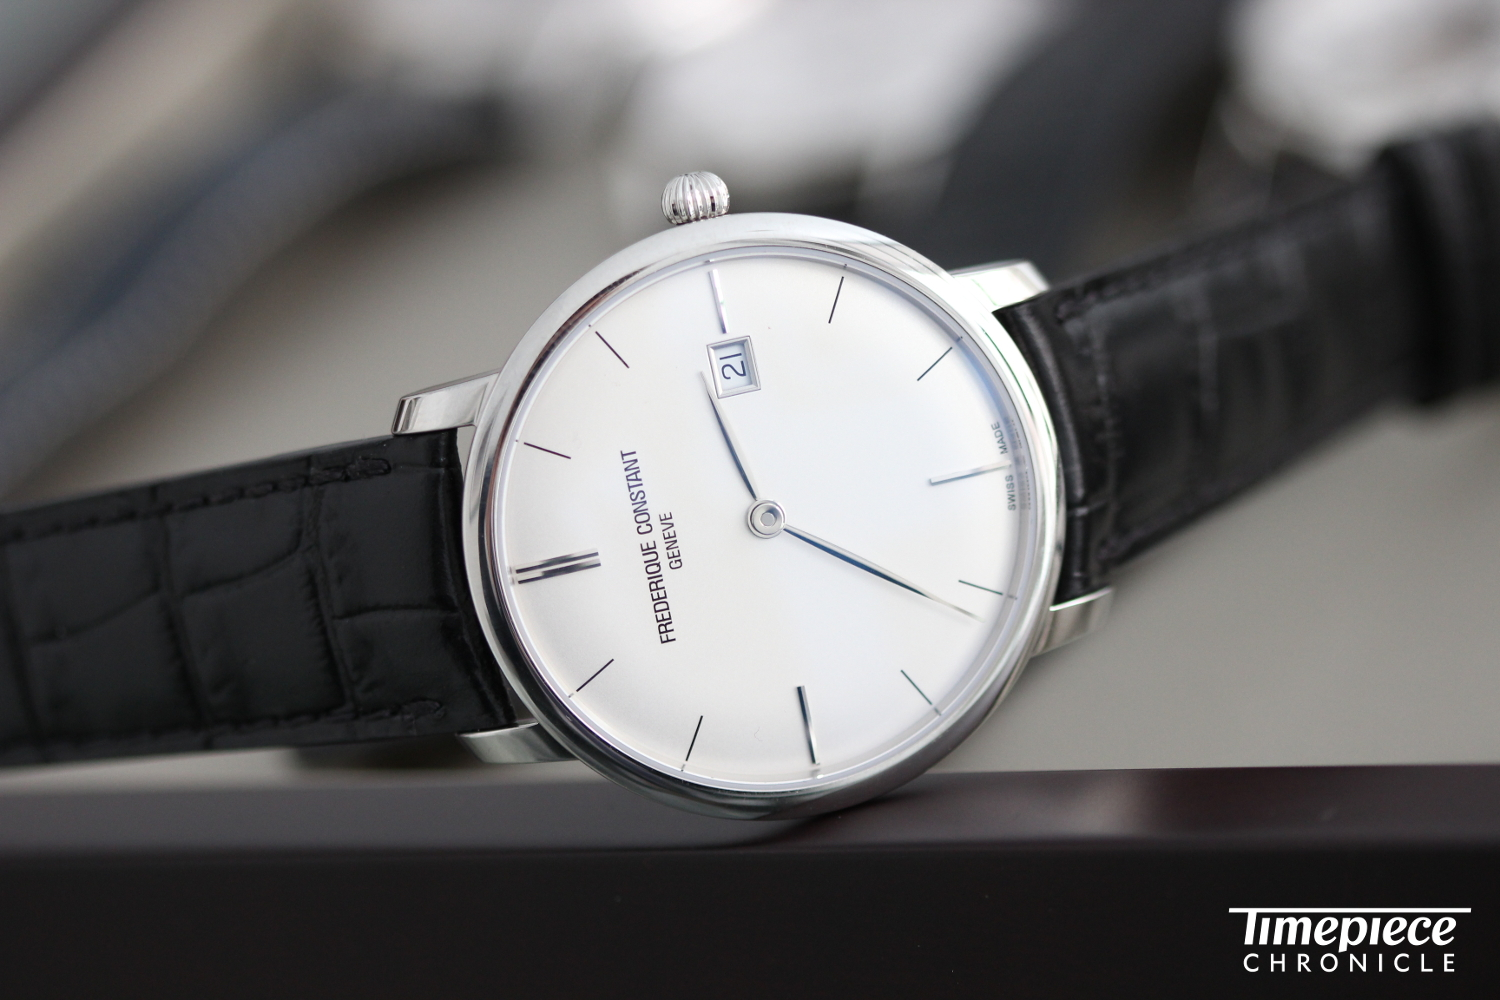 Frederique Constant time only dress watch.JPG